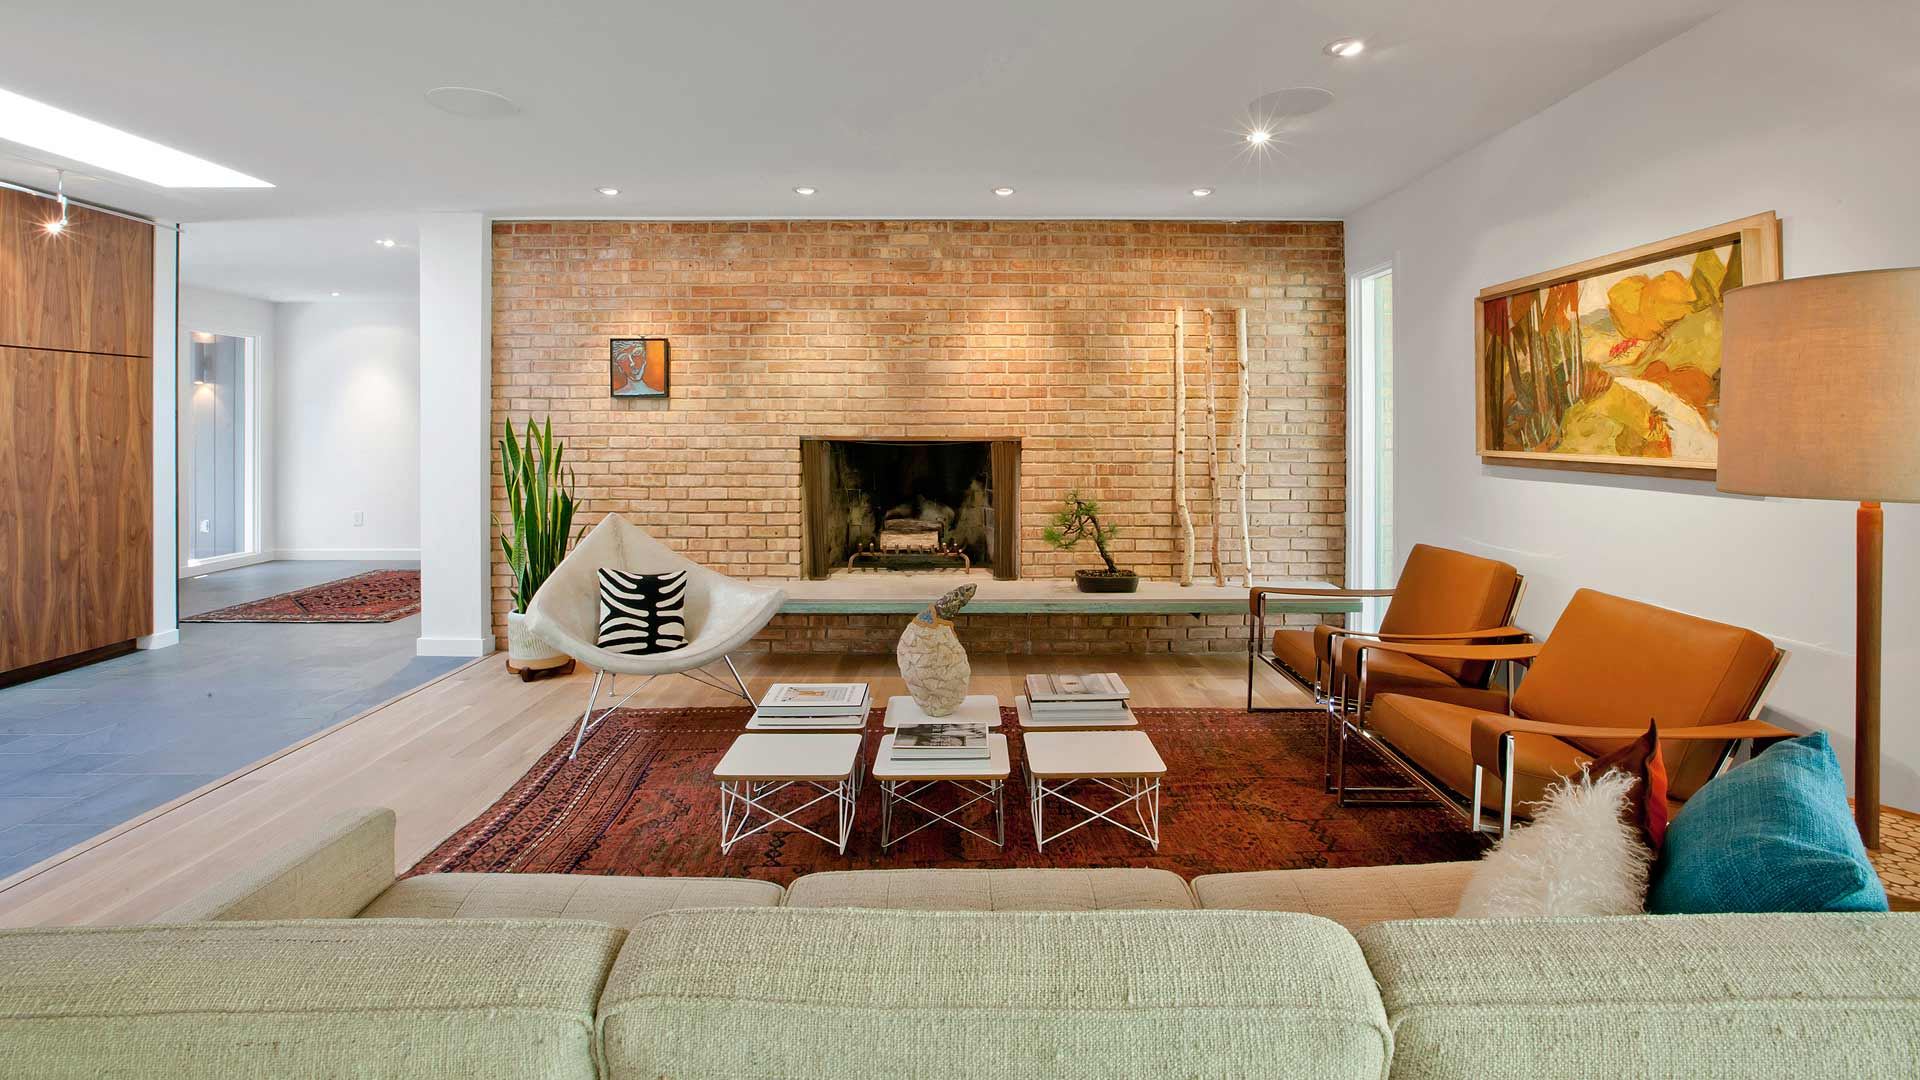 Original Mid Mod Fireplace, raised concrete hearth, modern furniture, large red area rugs, custom artwork, retro furnishings, inside out brick wall, exposed brick, leather side chairs, linen sofa, flokate pillow, wide plank oak flooring - Midcentury Modern Renovation - 81st Street - Indianapolis, Christopher Short, Architect, HAUS Architecture